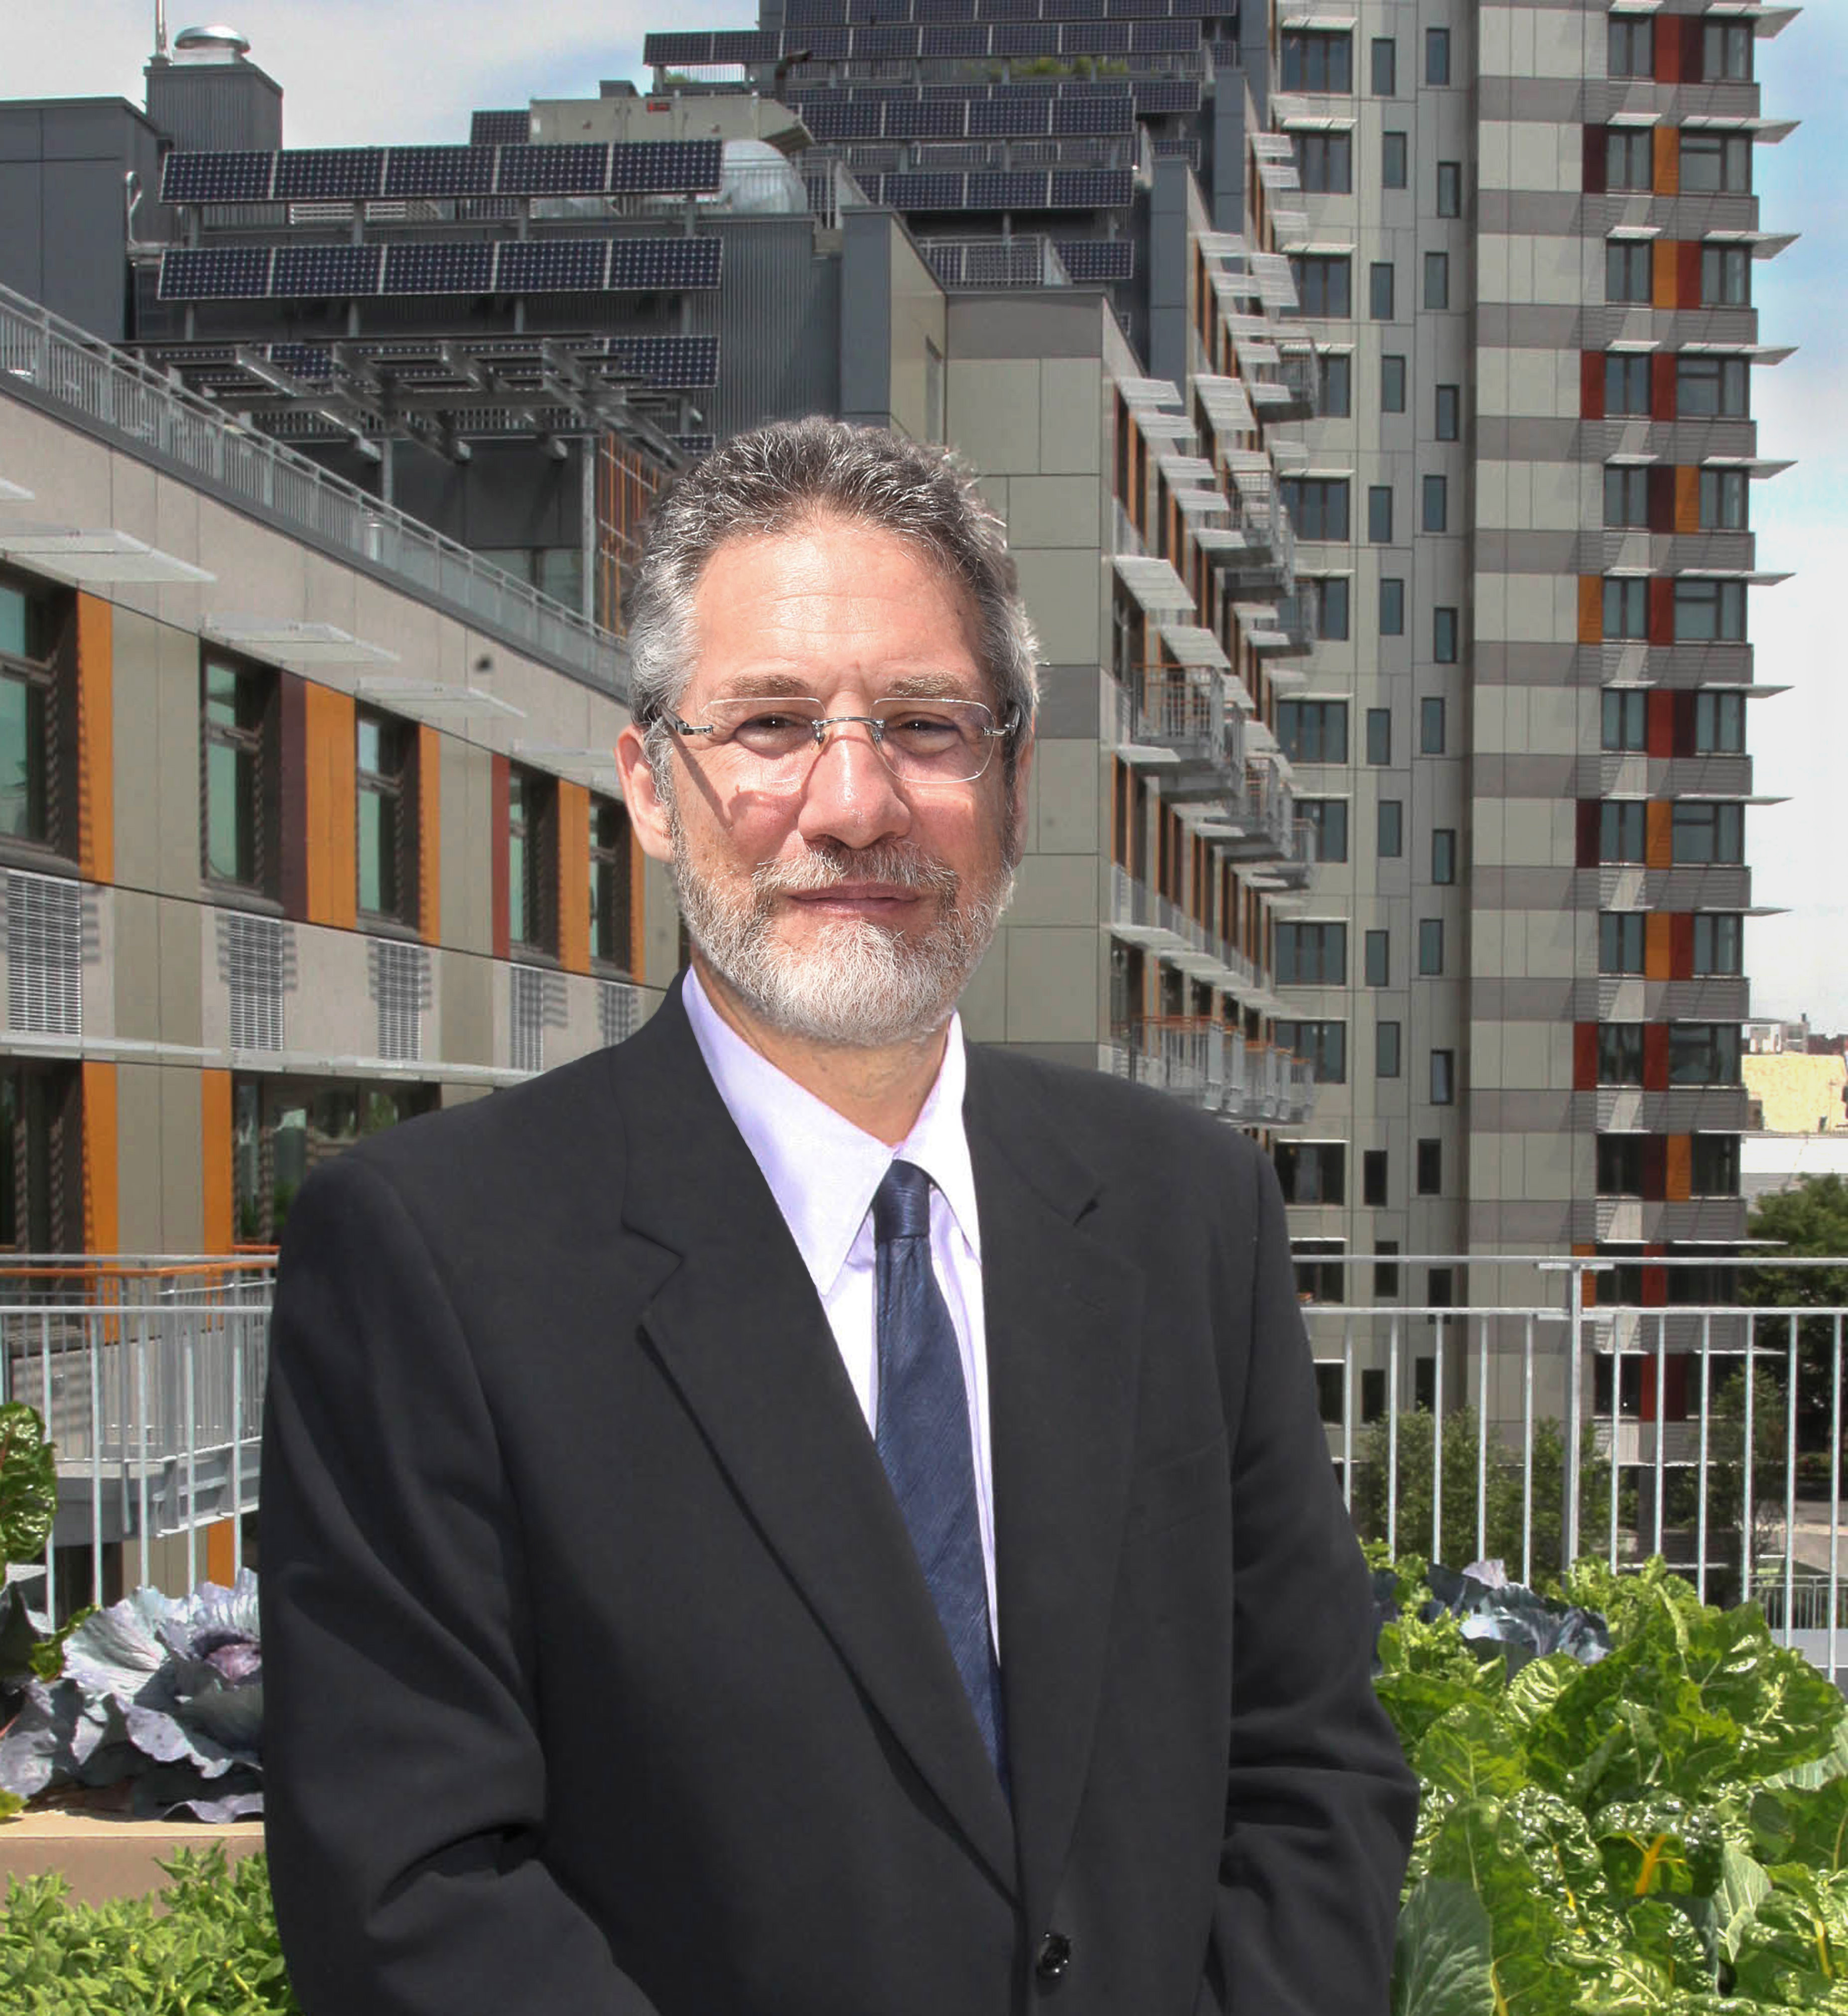 Jonathan F.P. Rose Selected as Winner of the 2021 ULI Prize for Visionaries in Urban Development